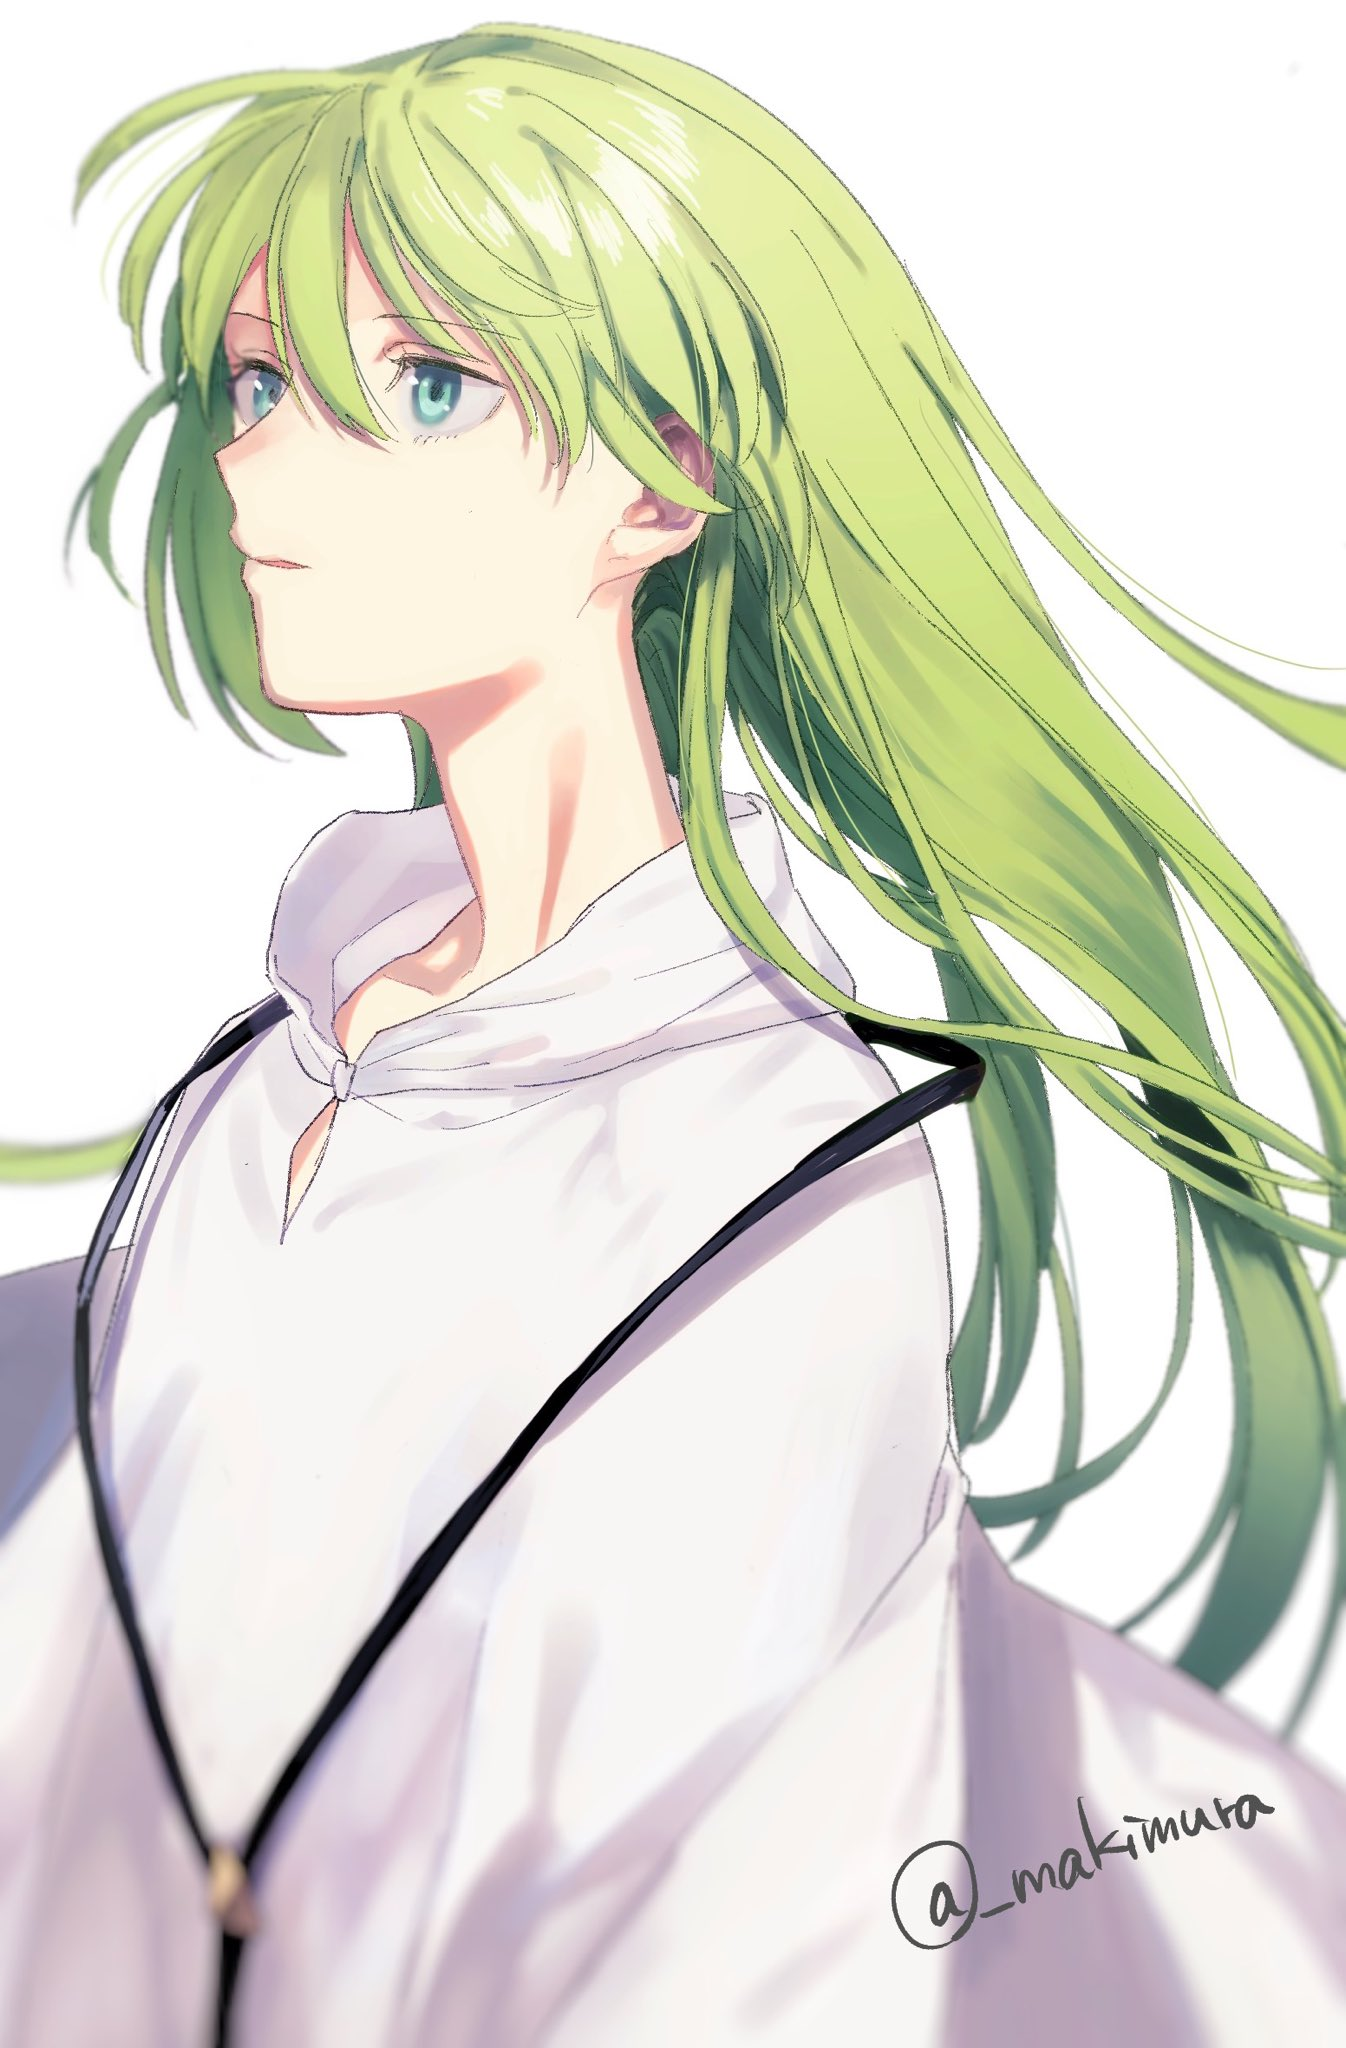 1boy androgynous aqua_eyes blurry depth_of_field enkidu_(fate/strange_fake) eyelashes fate/strange_fake fate_(series) green_eyes green_hair highres makimura_(miwmiw-cage) male_focus solo twitter_username upper_body wide_sleeves